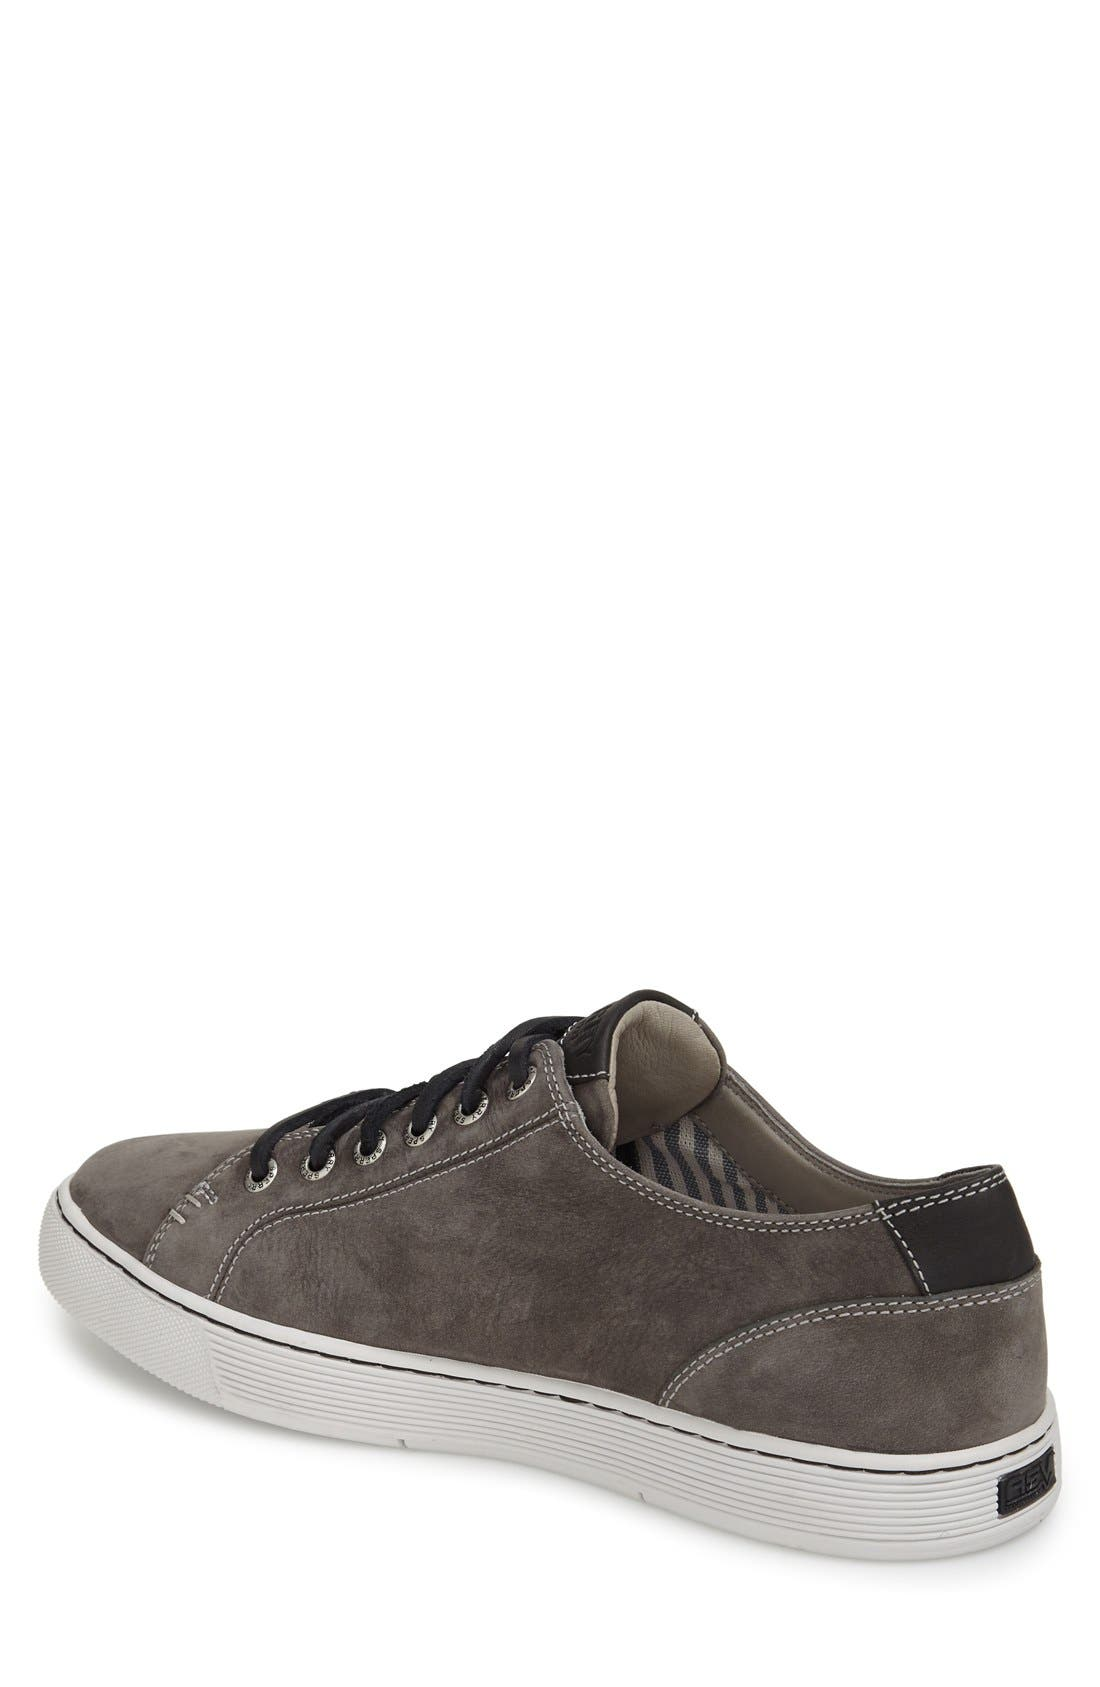 Gold Cup LLT Sneaker,                             Alternate thumbnail 6, color,                             GREY SUEDE